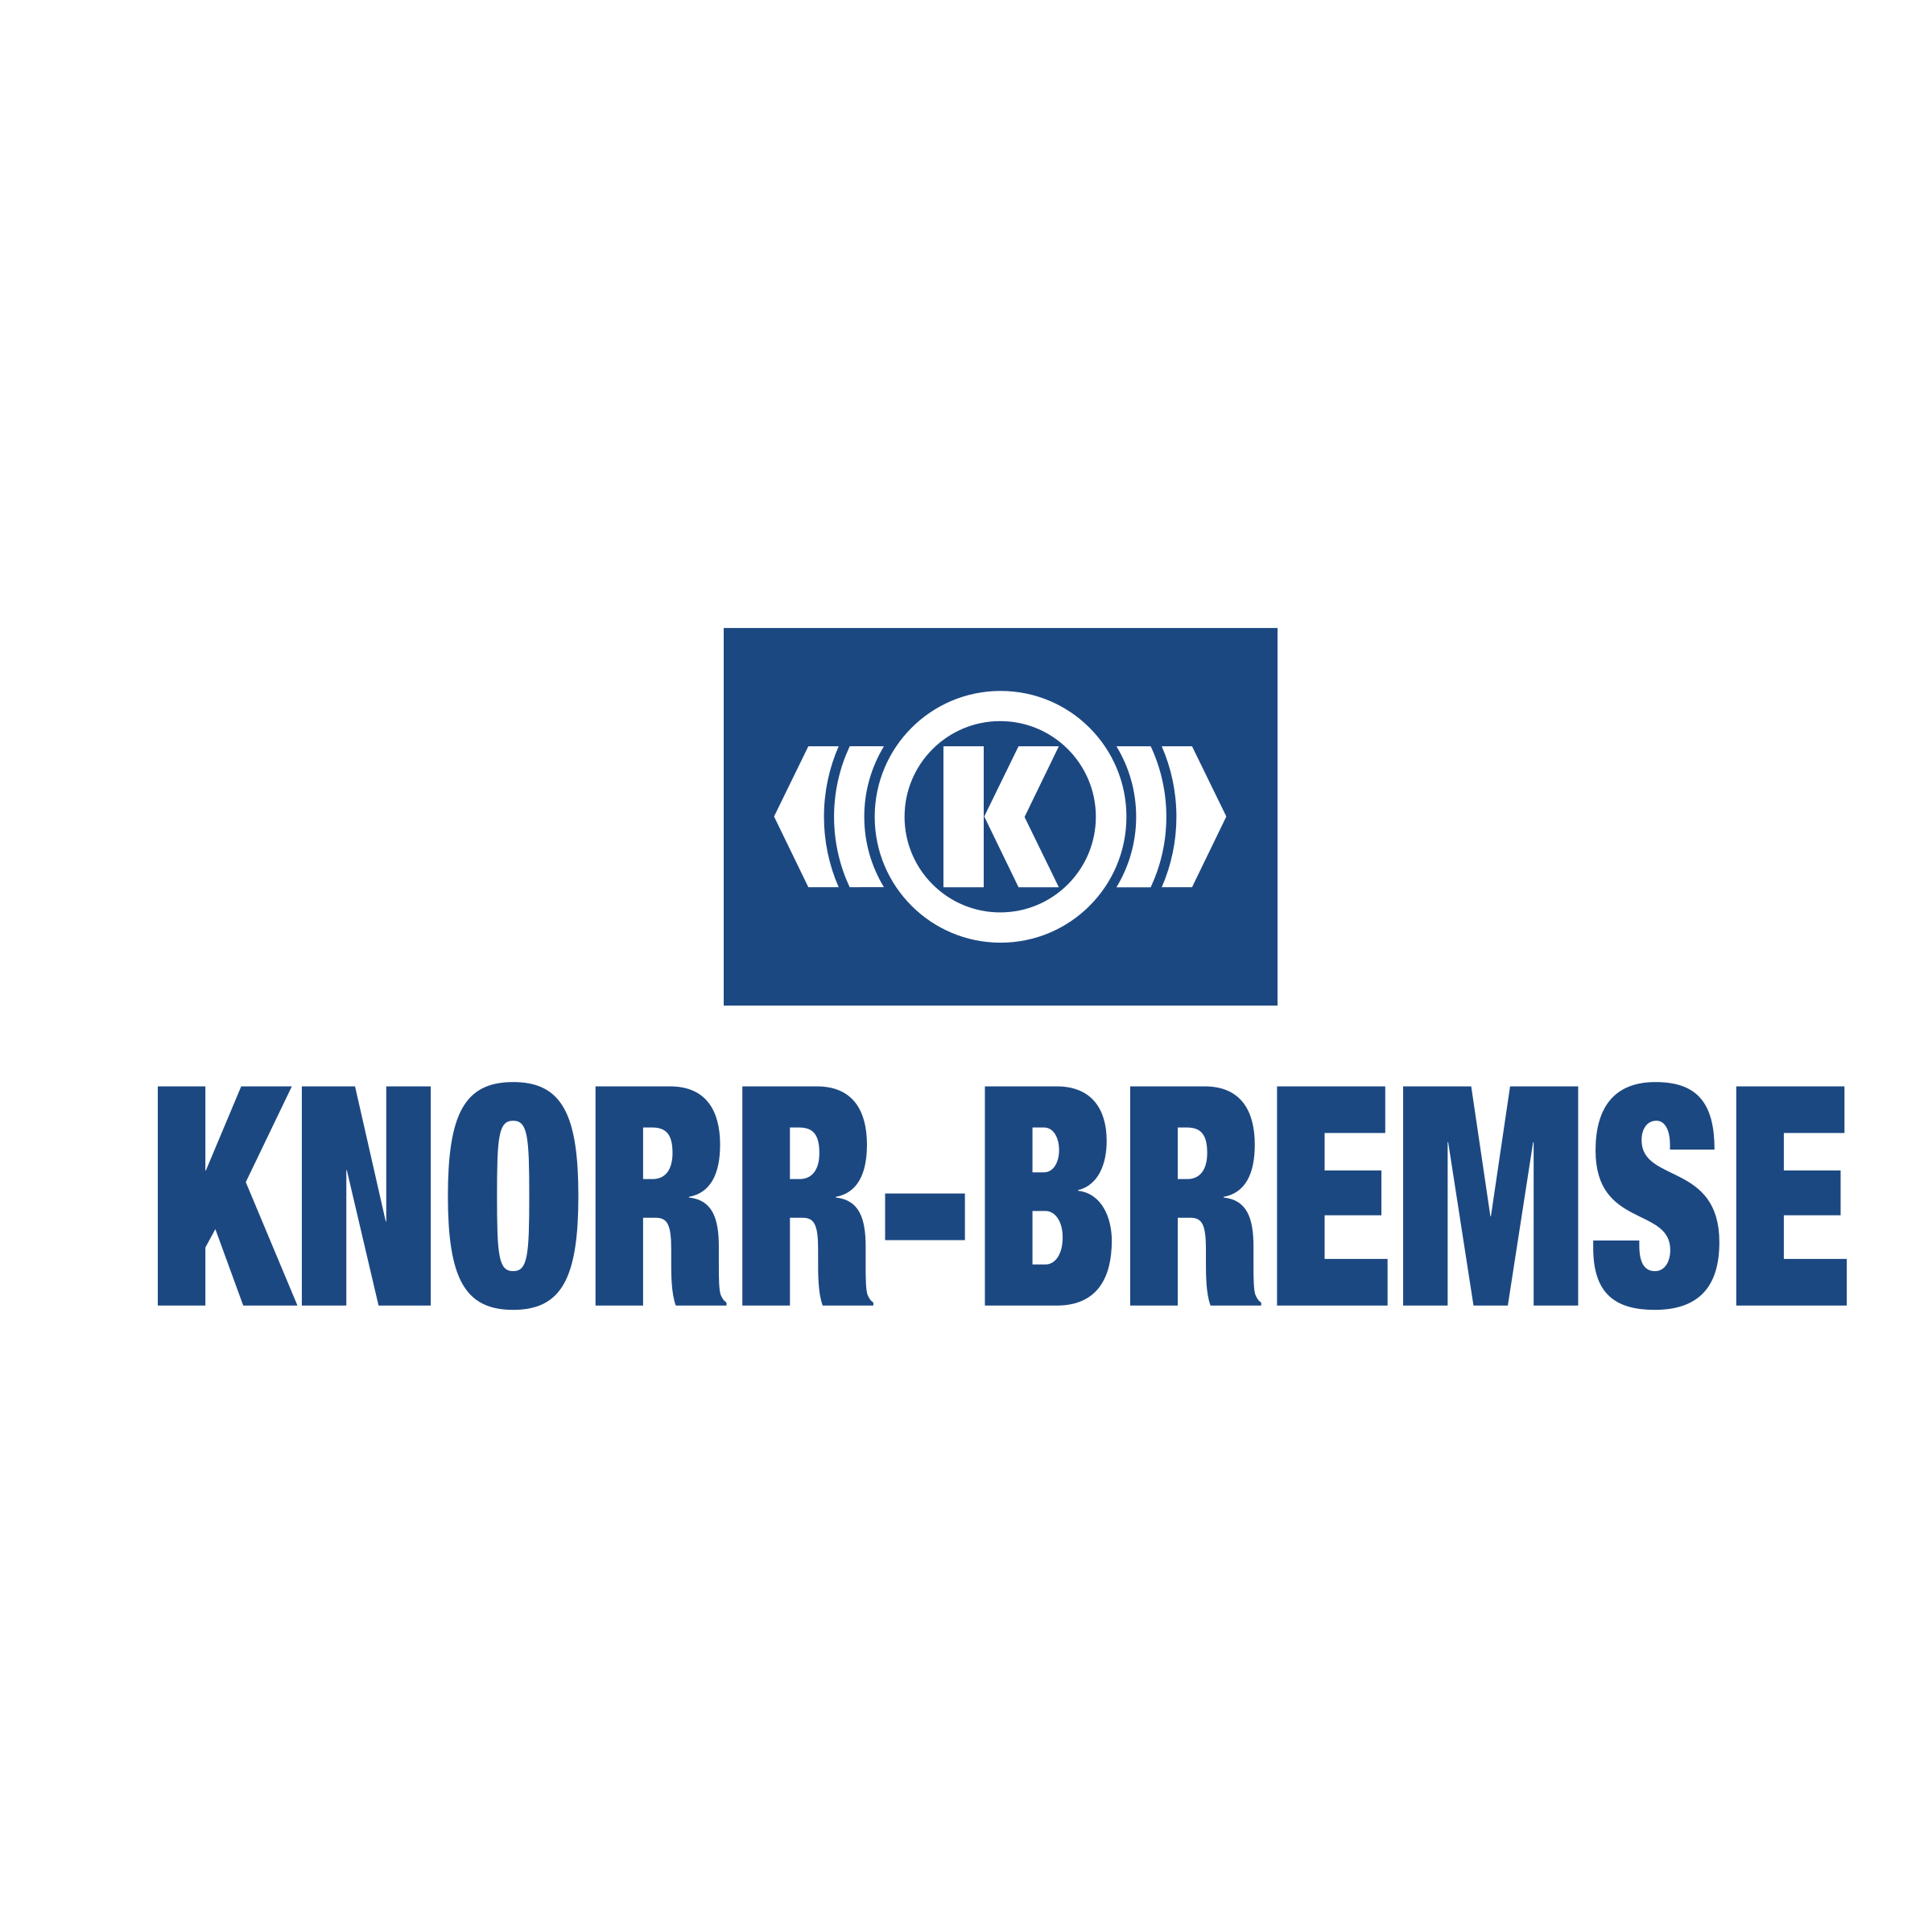 KNORR-BREMSE PARTS IN STOCK